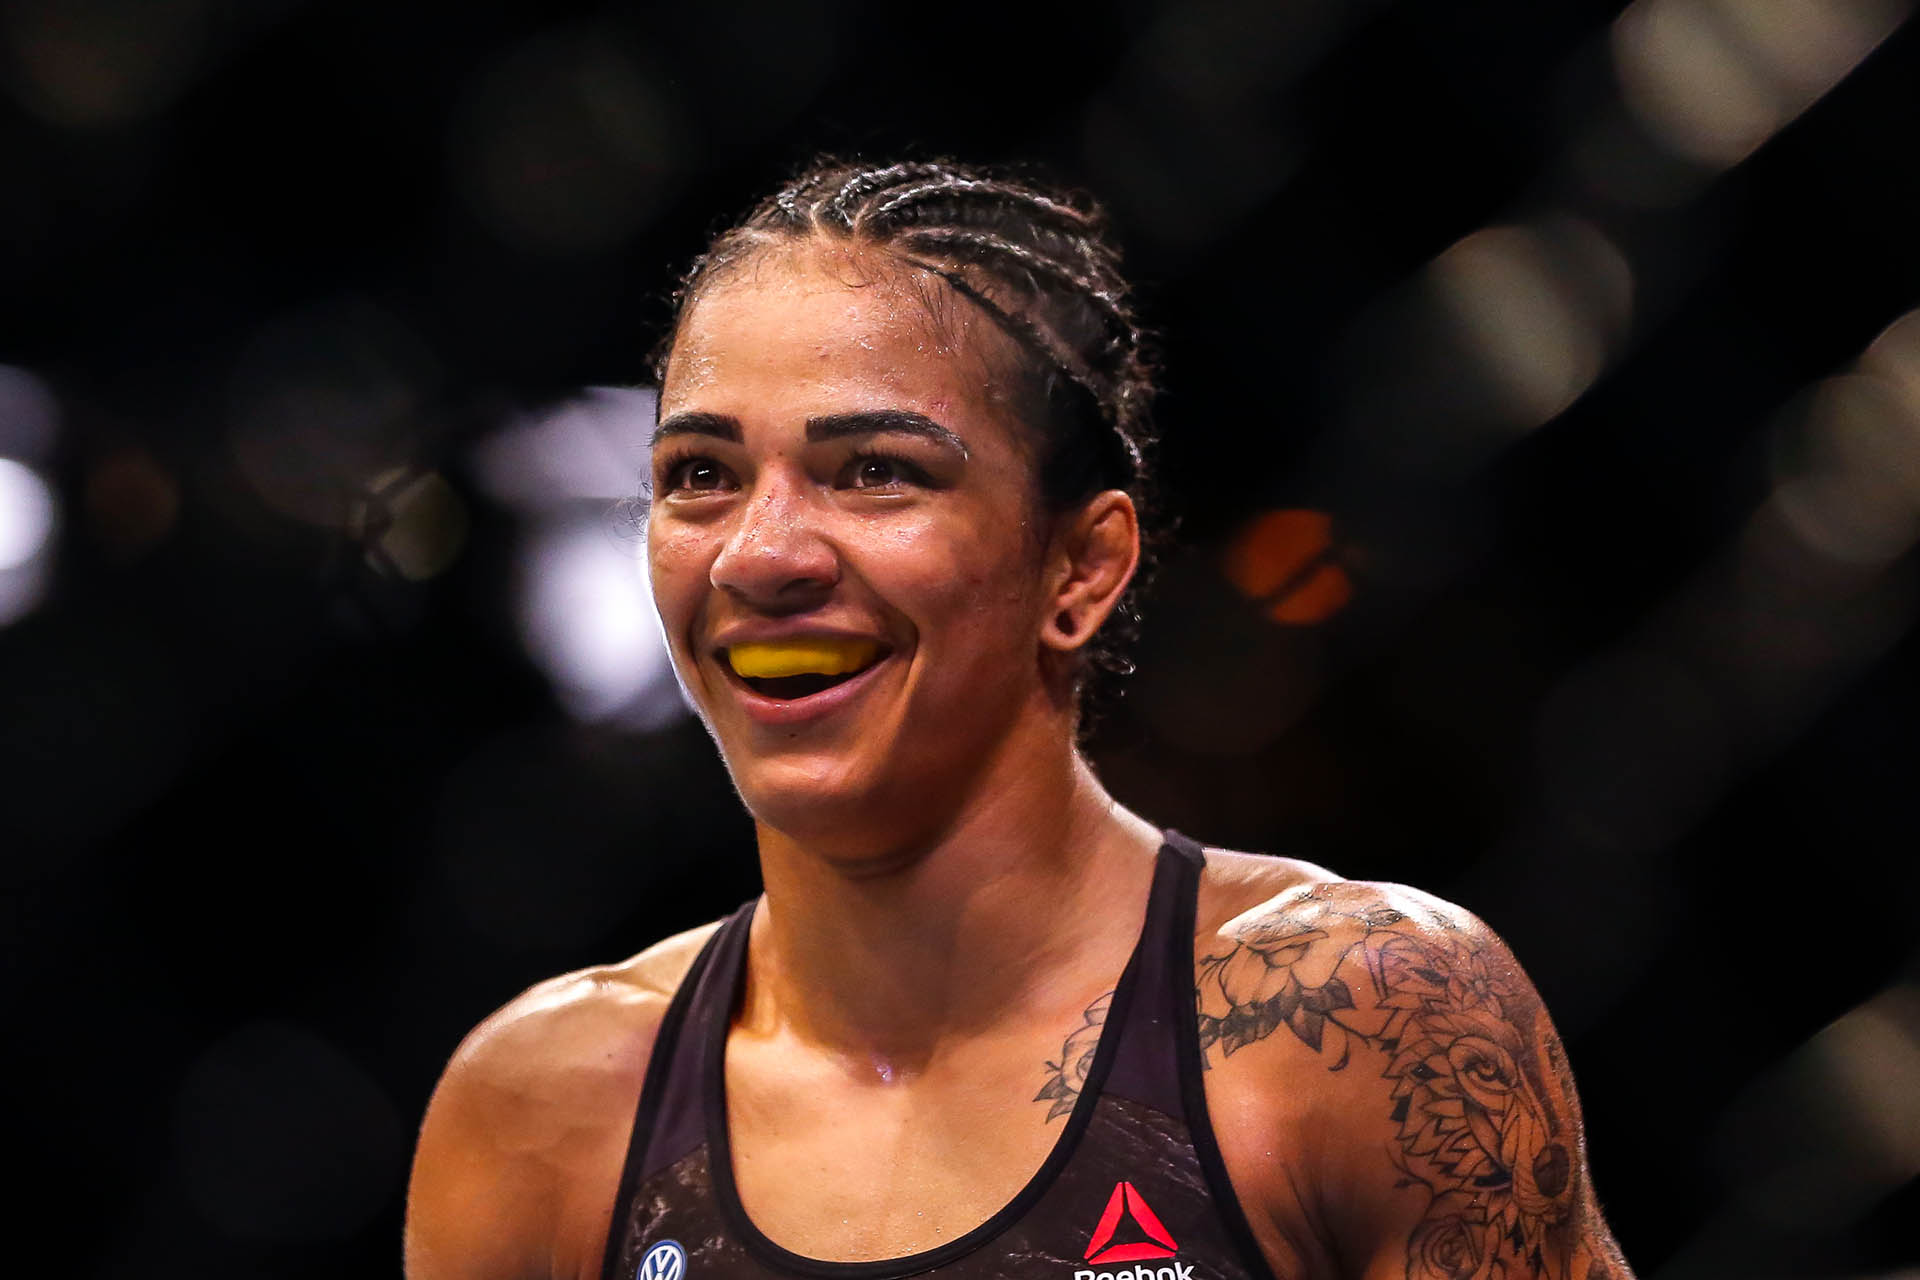 Viviane Araujo of Brazil reacts after her TKO victory over Talita Bernardo of Brazil in their women's bantamweight bout during the UFC 237 event at Jeunesse Arena on May 11, 2019 in Rio de Janeiro, Brazil. (Photo by Alexandre Schneider/Getty Images)